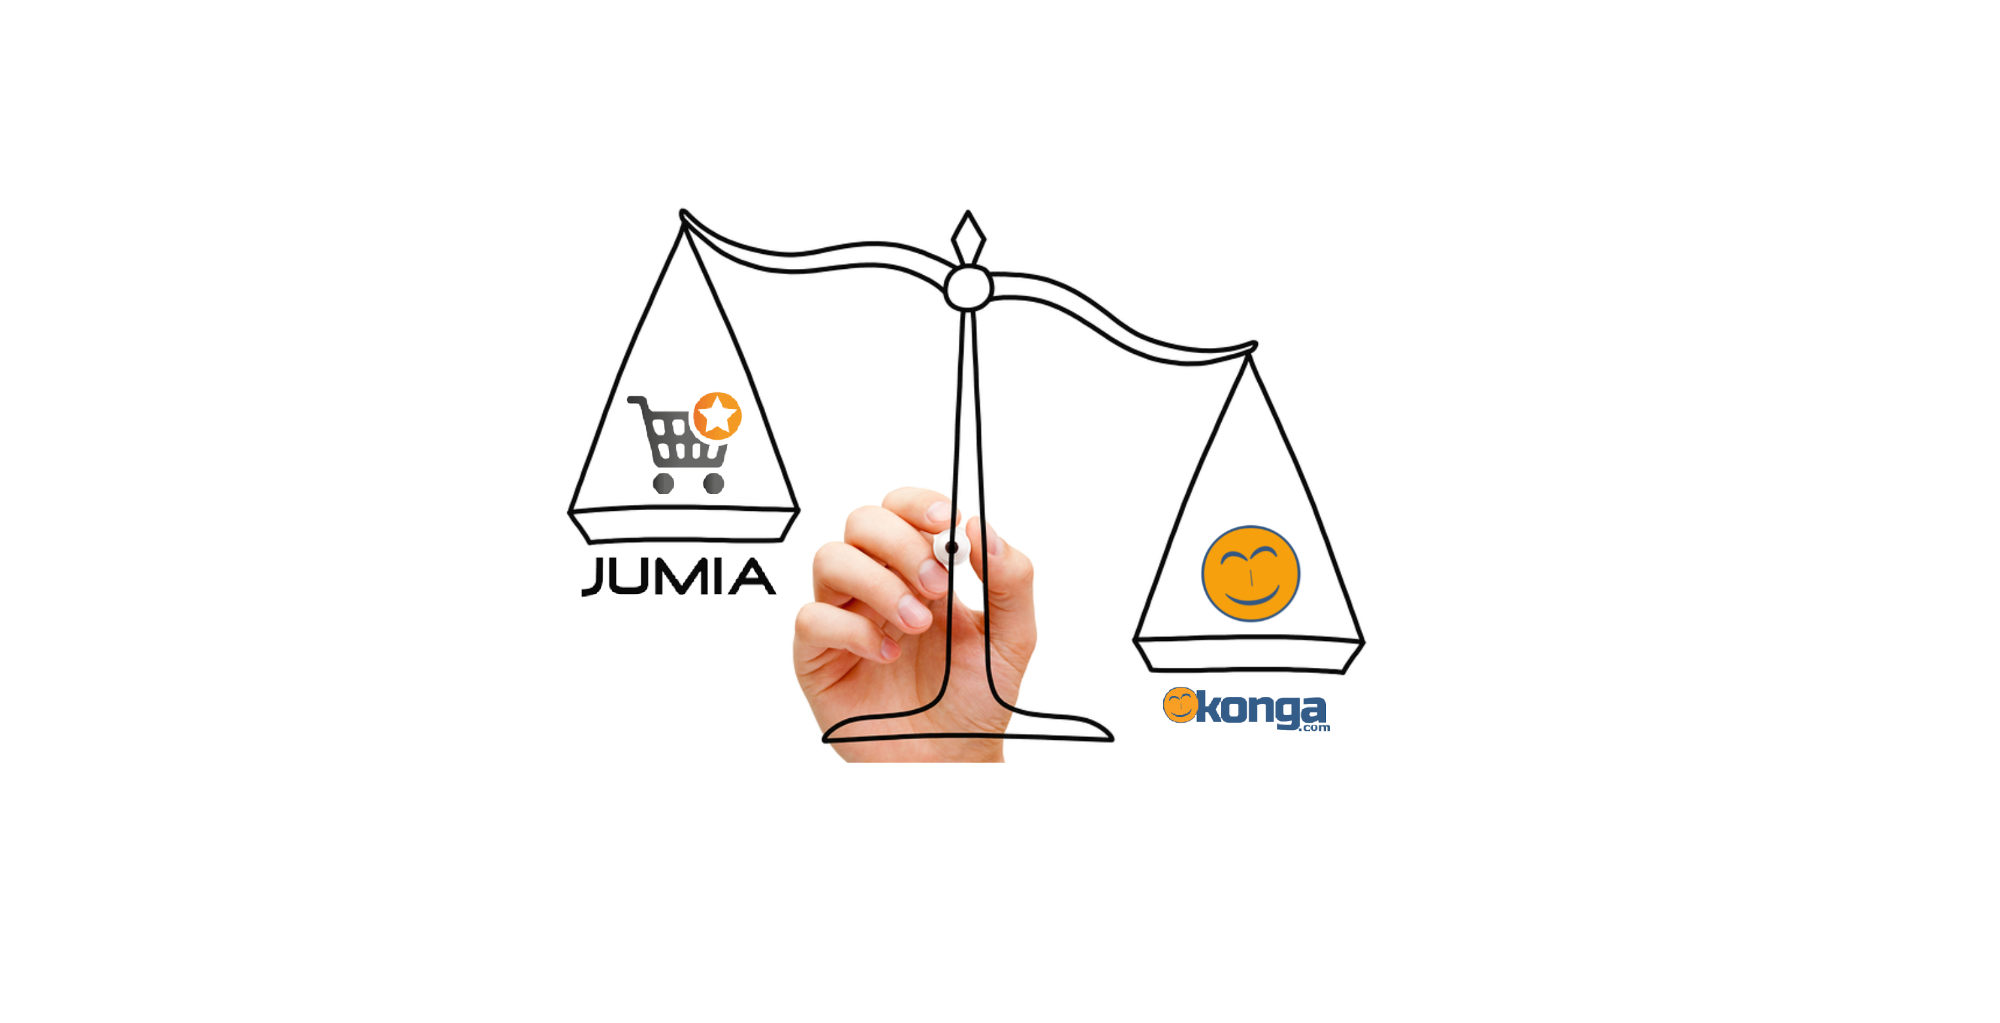 """Why is Konga Worth """"Only"""" $35m And Jumia $1 Billion?"""